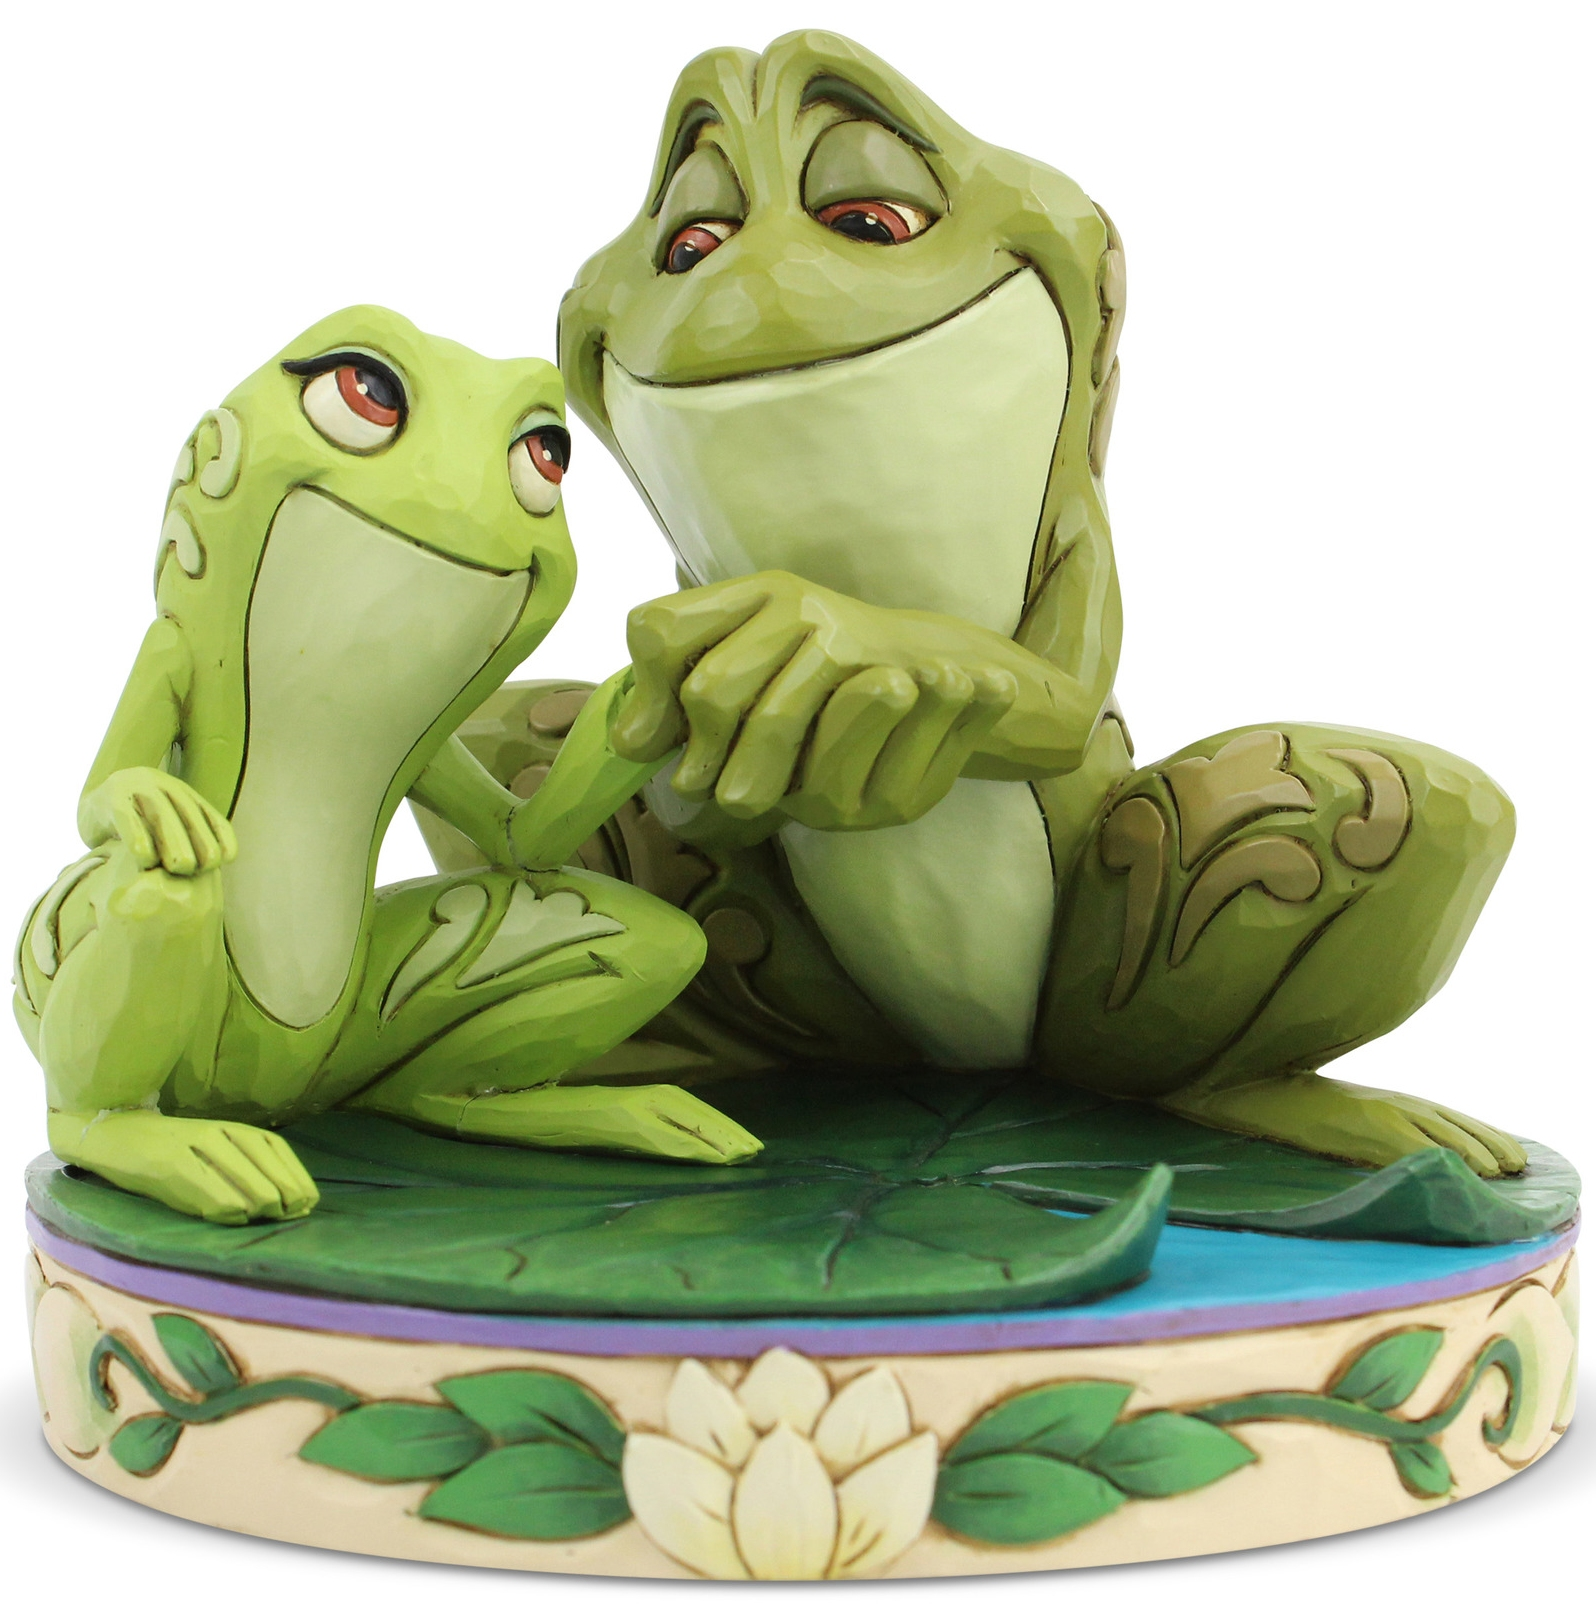 Disney Traditions by Jim Shore 6005960N Tiana and Naveen as Frog Figurine